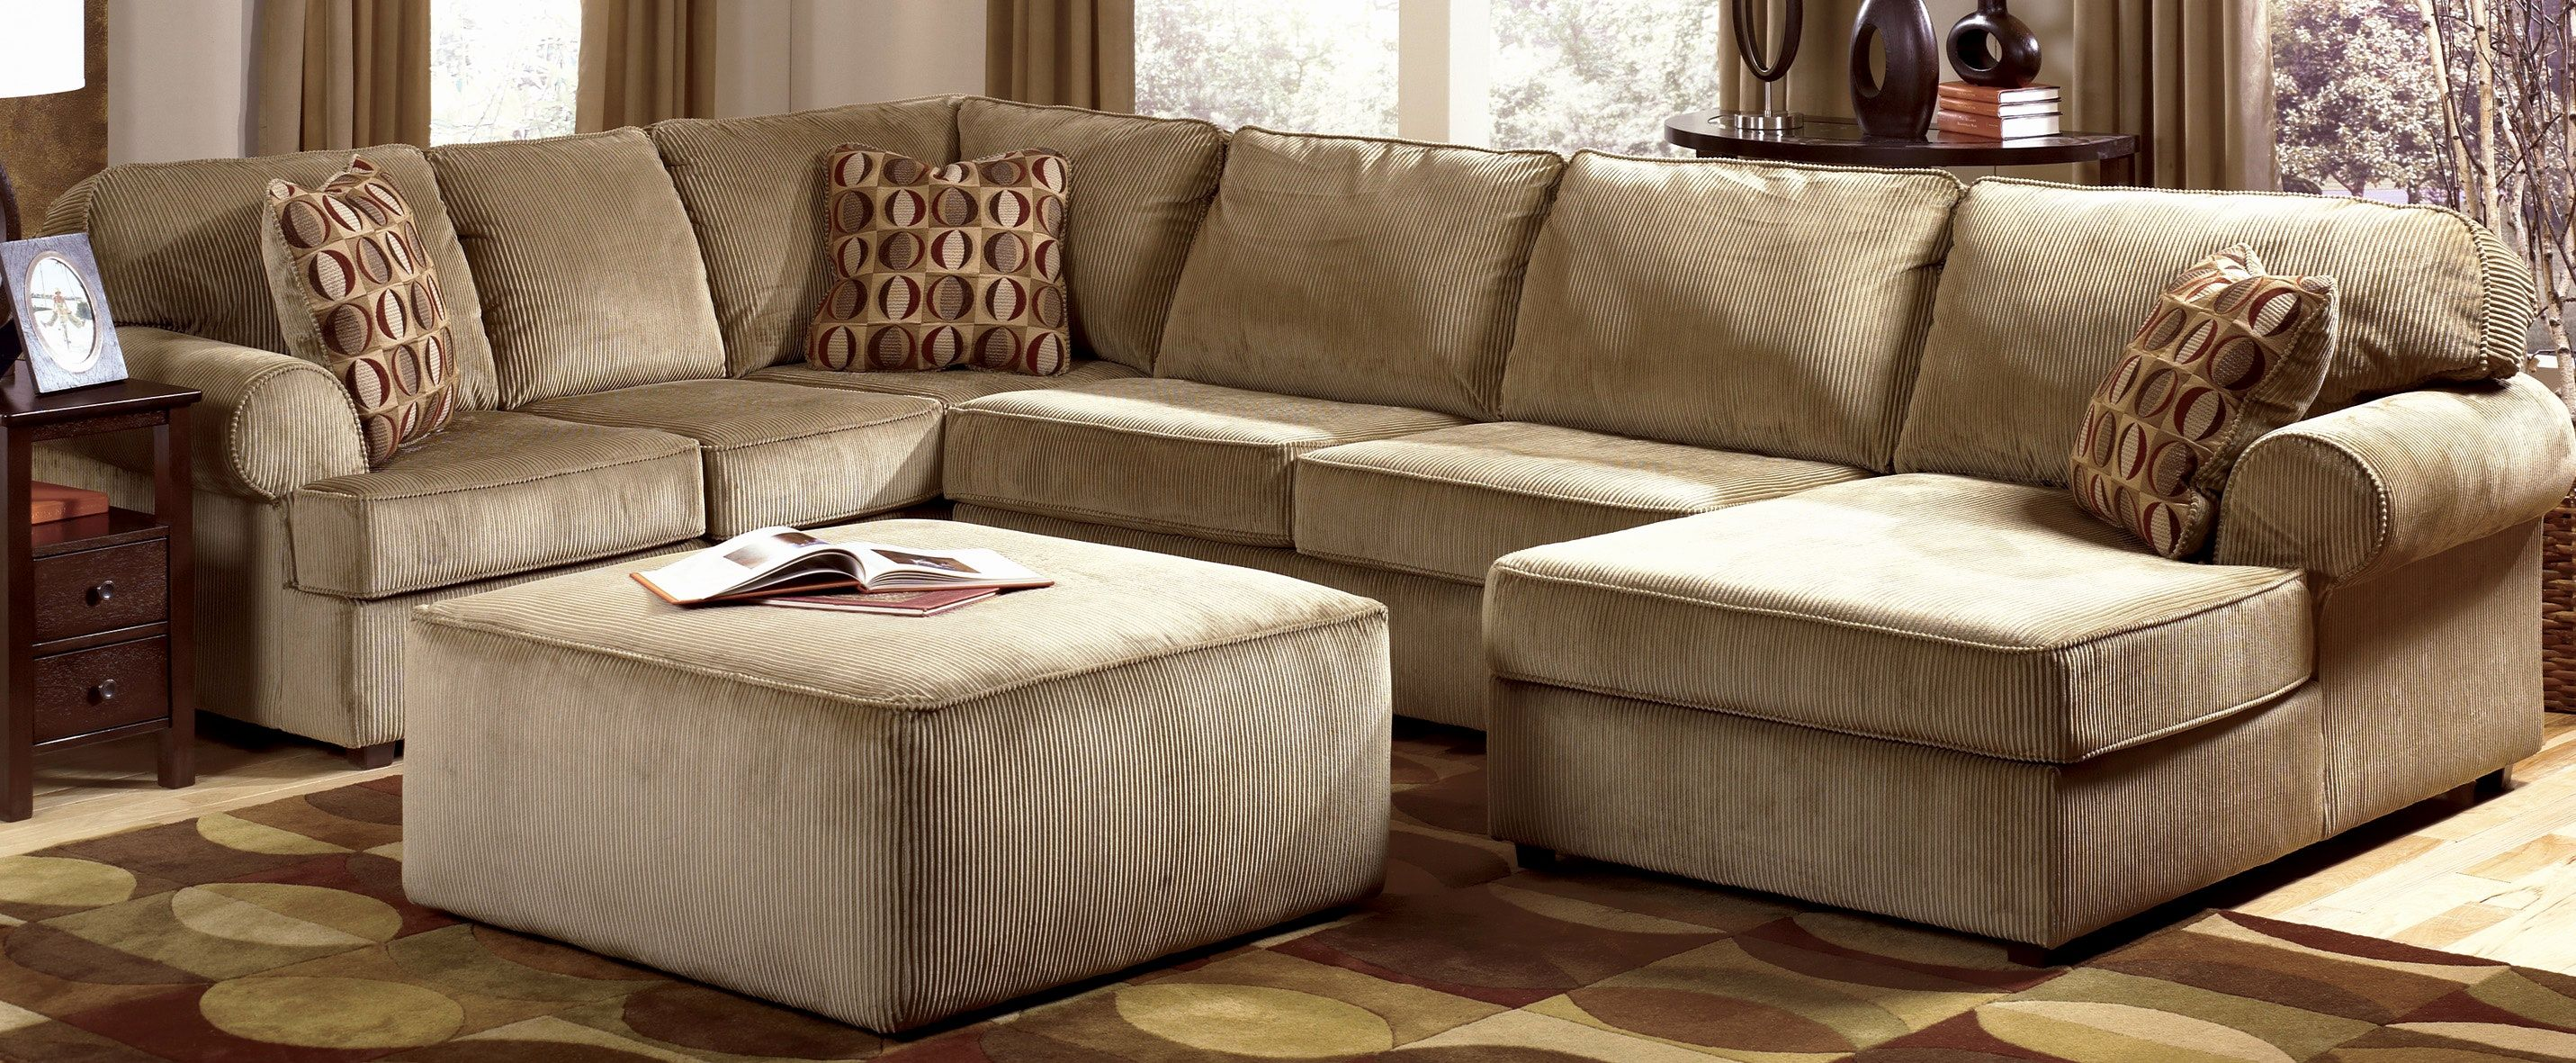 Elegant Oversized Leather Sofa Photographs 79 Great Ornate Warm U Shaped Chaise With Brown Sectional Sofa Sectional Sofa With Chaise Leather Sofa And Loveseat